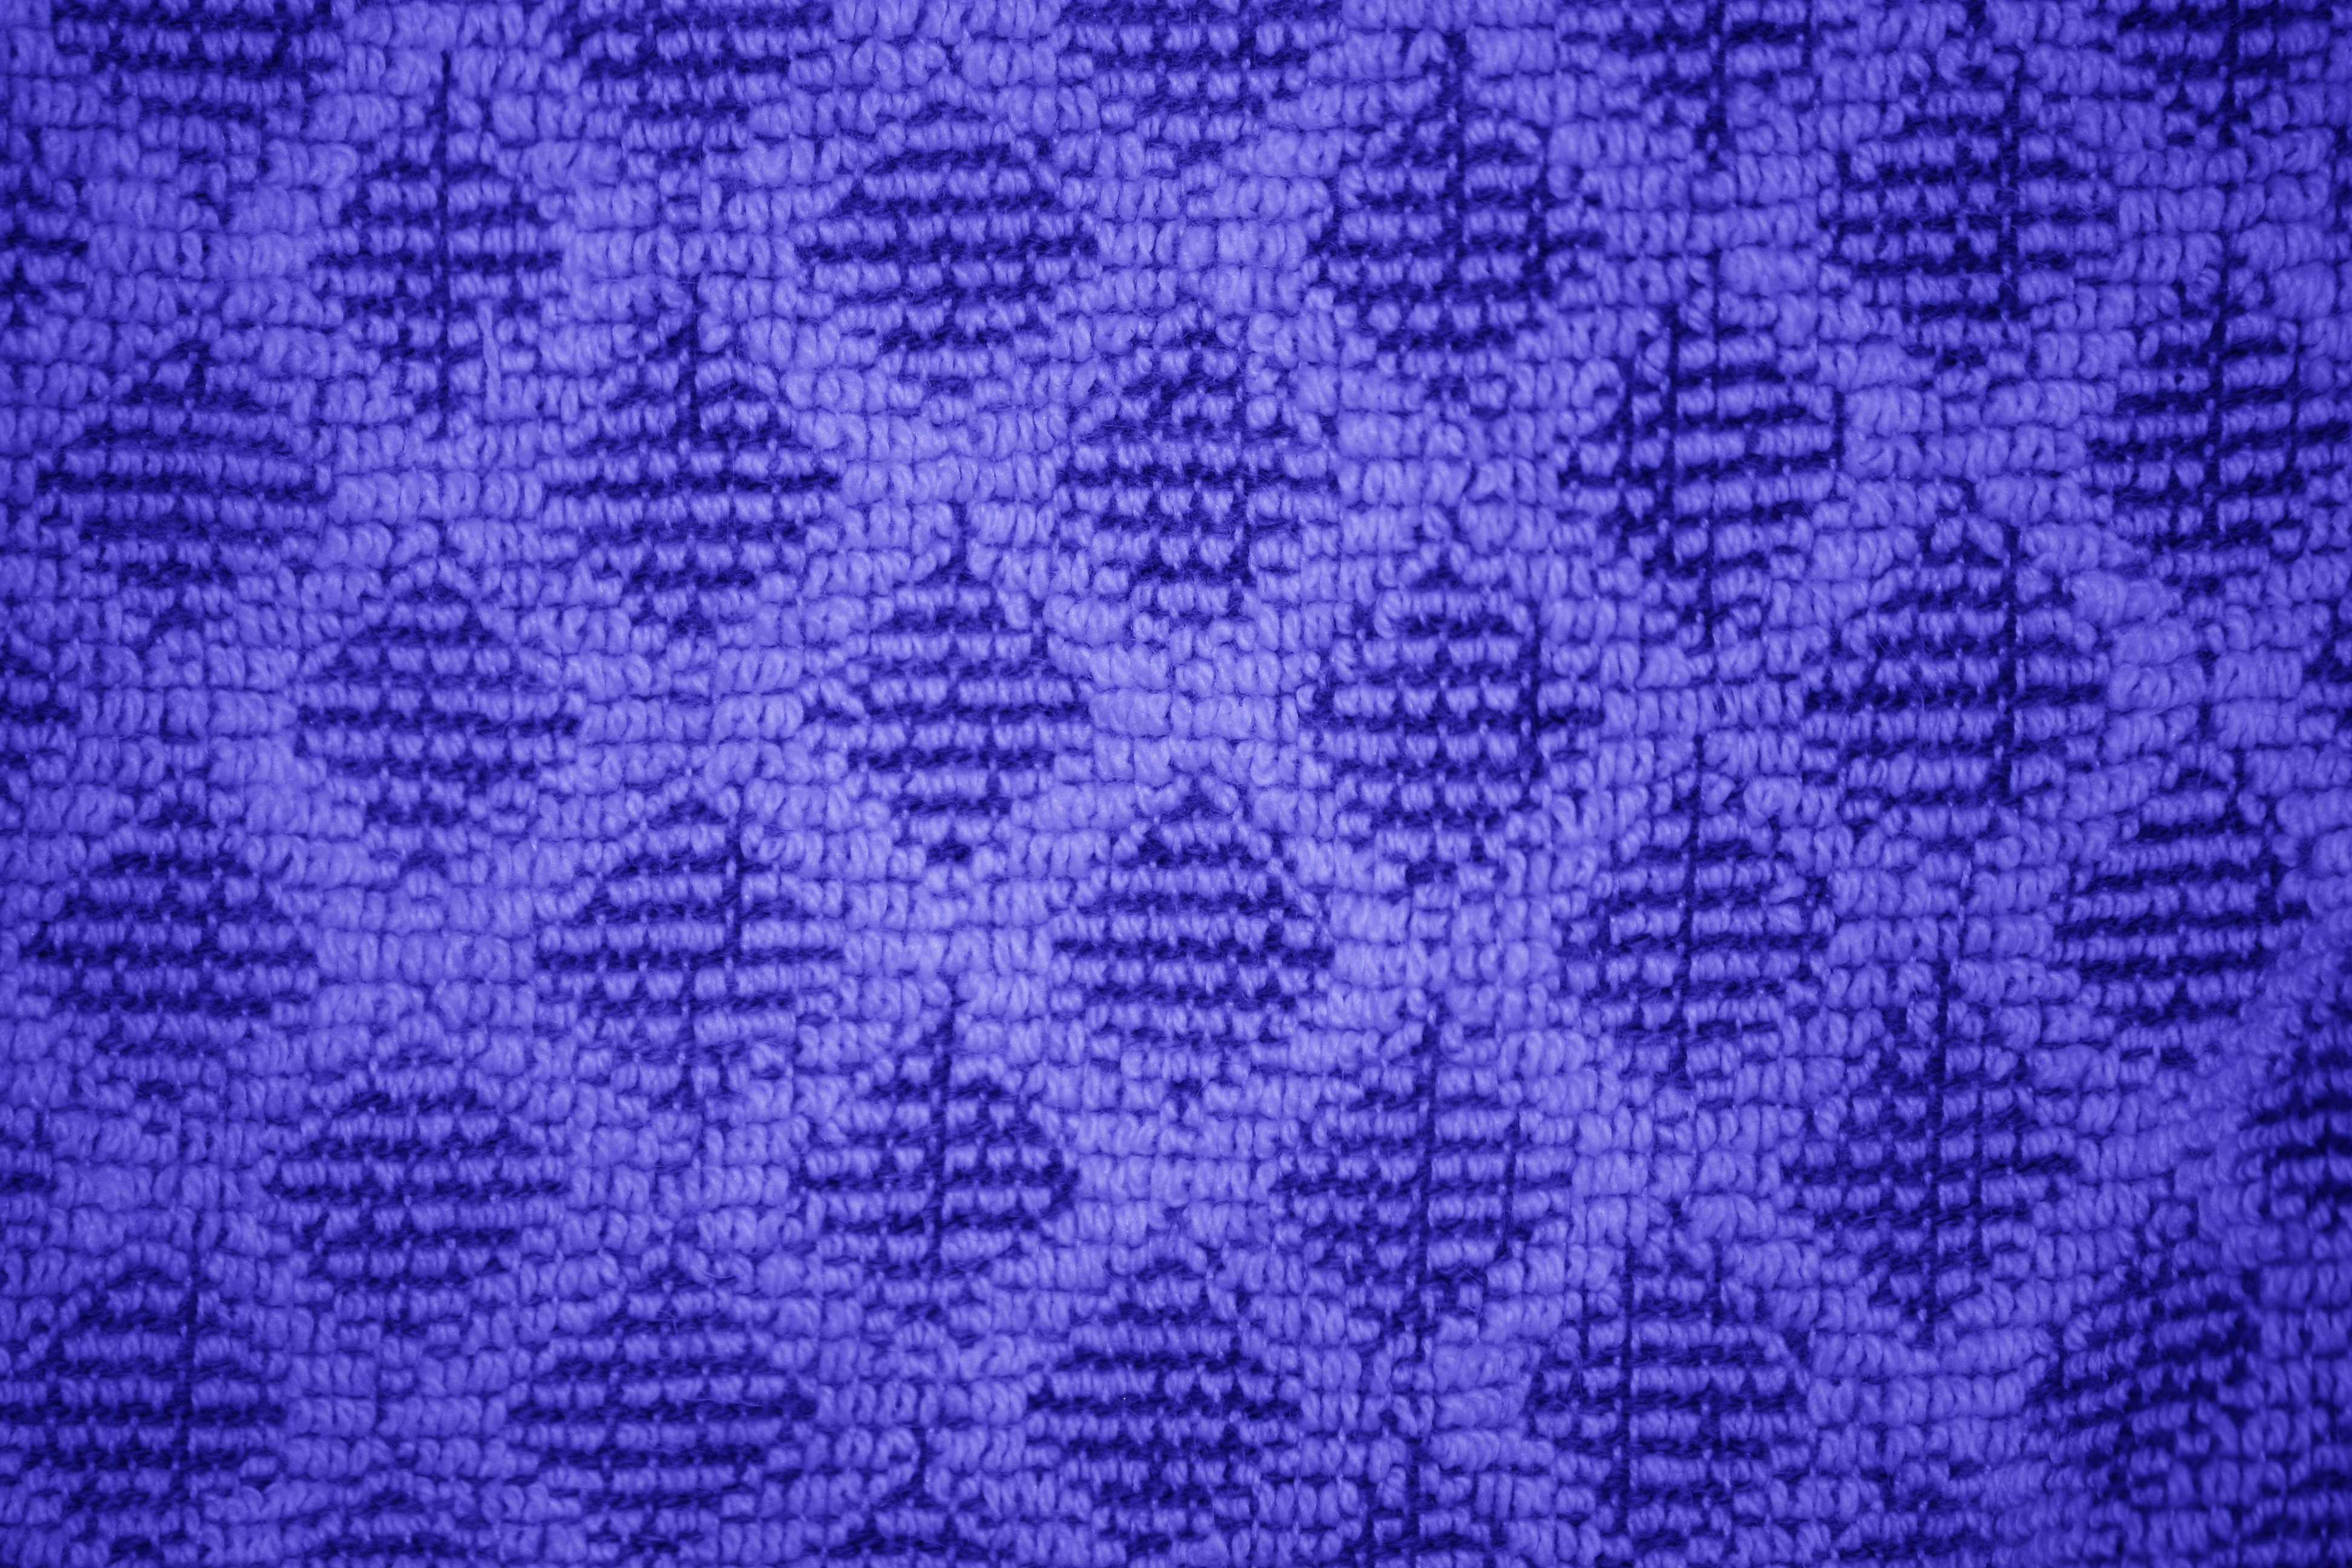 Blue Dish Towel with Diamond Pattern Close Up Texture Picture | Free ...